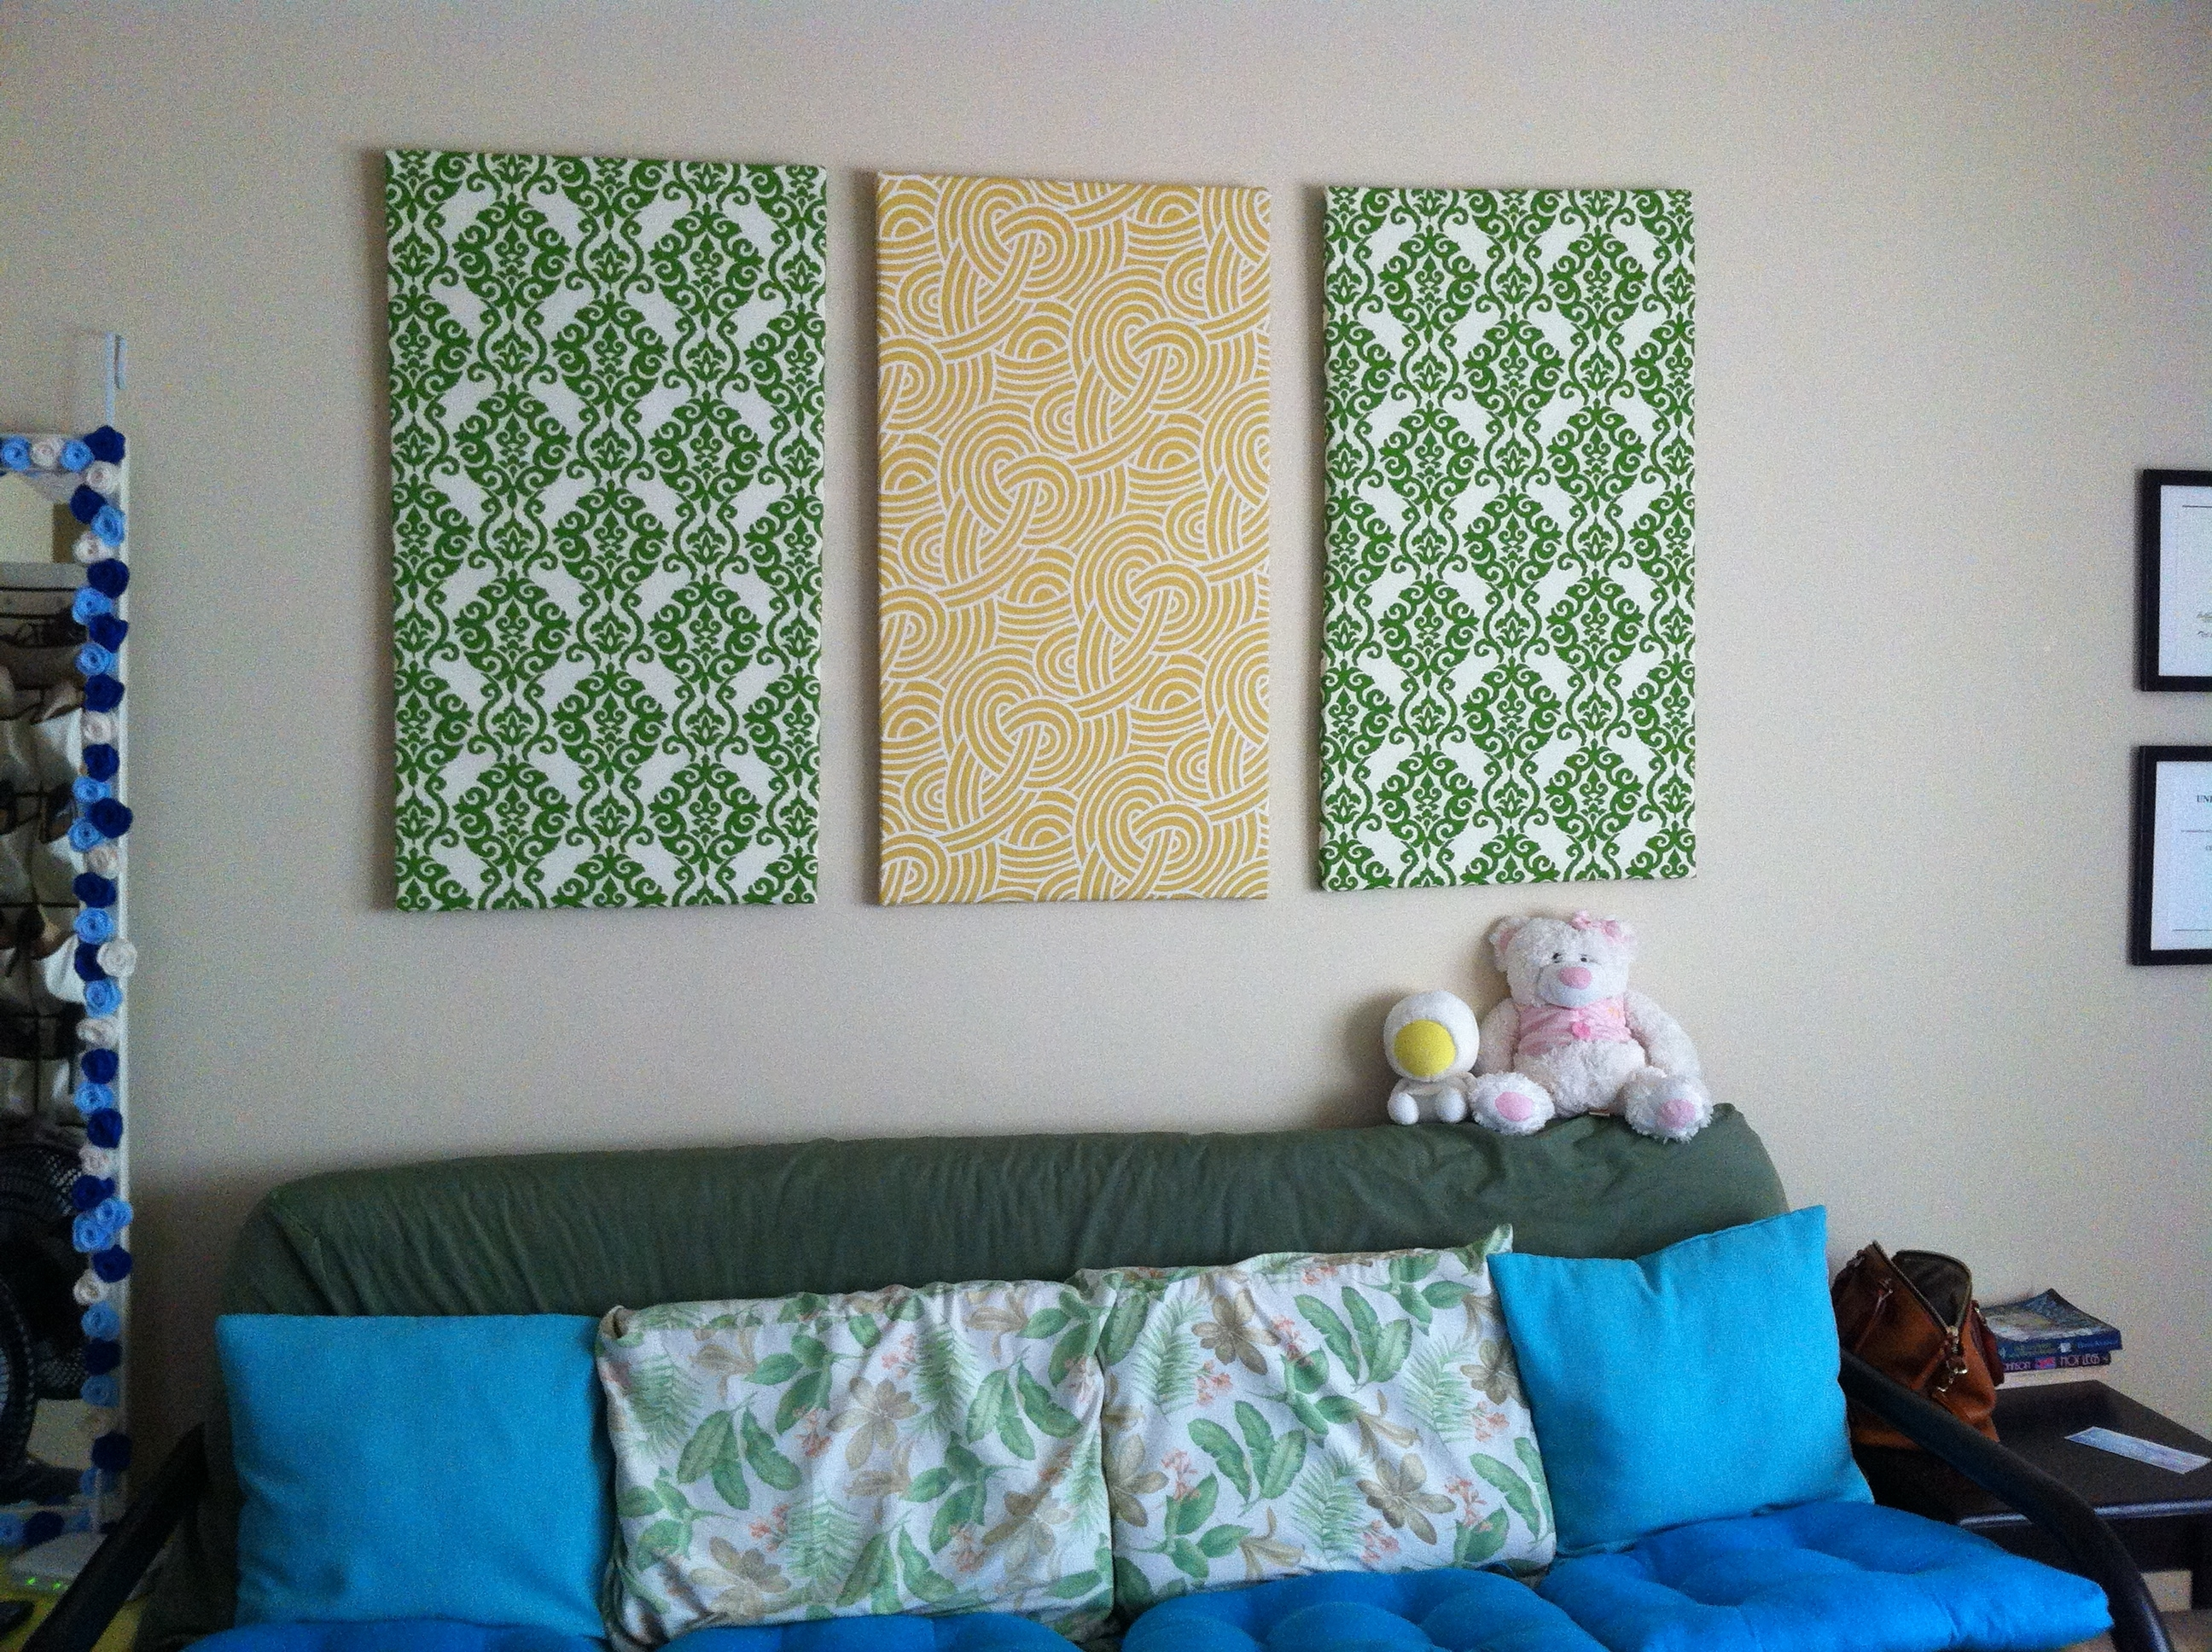 Diy Fabric Wall Art | Crafting Is Sanity throughout Most Recently Released Diy Fabric Wall Art